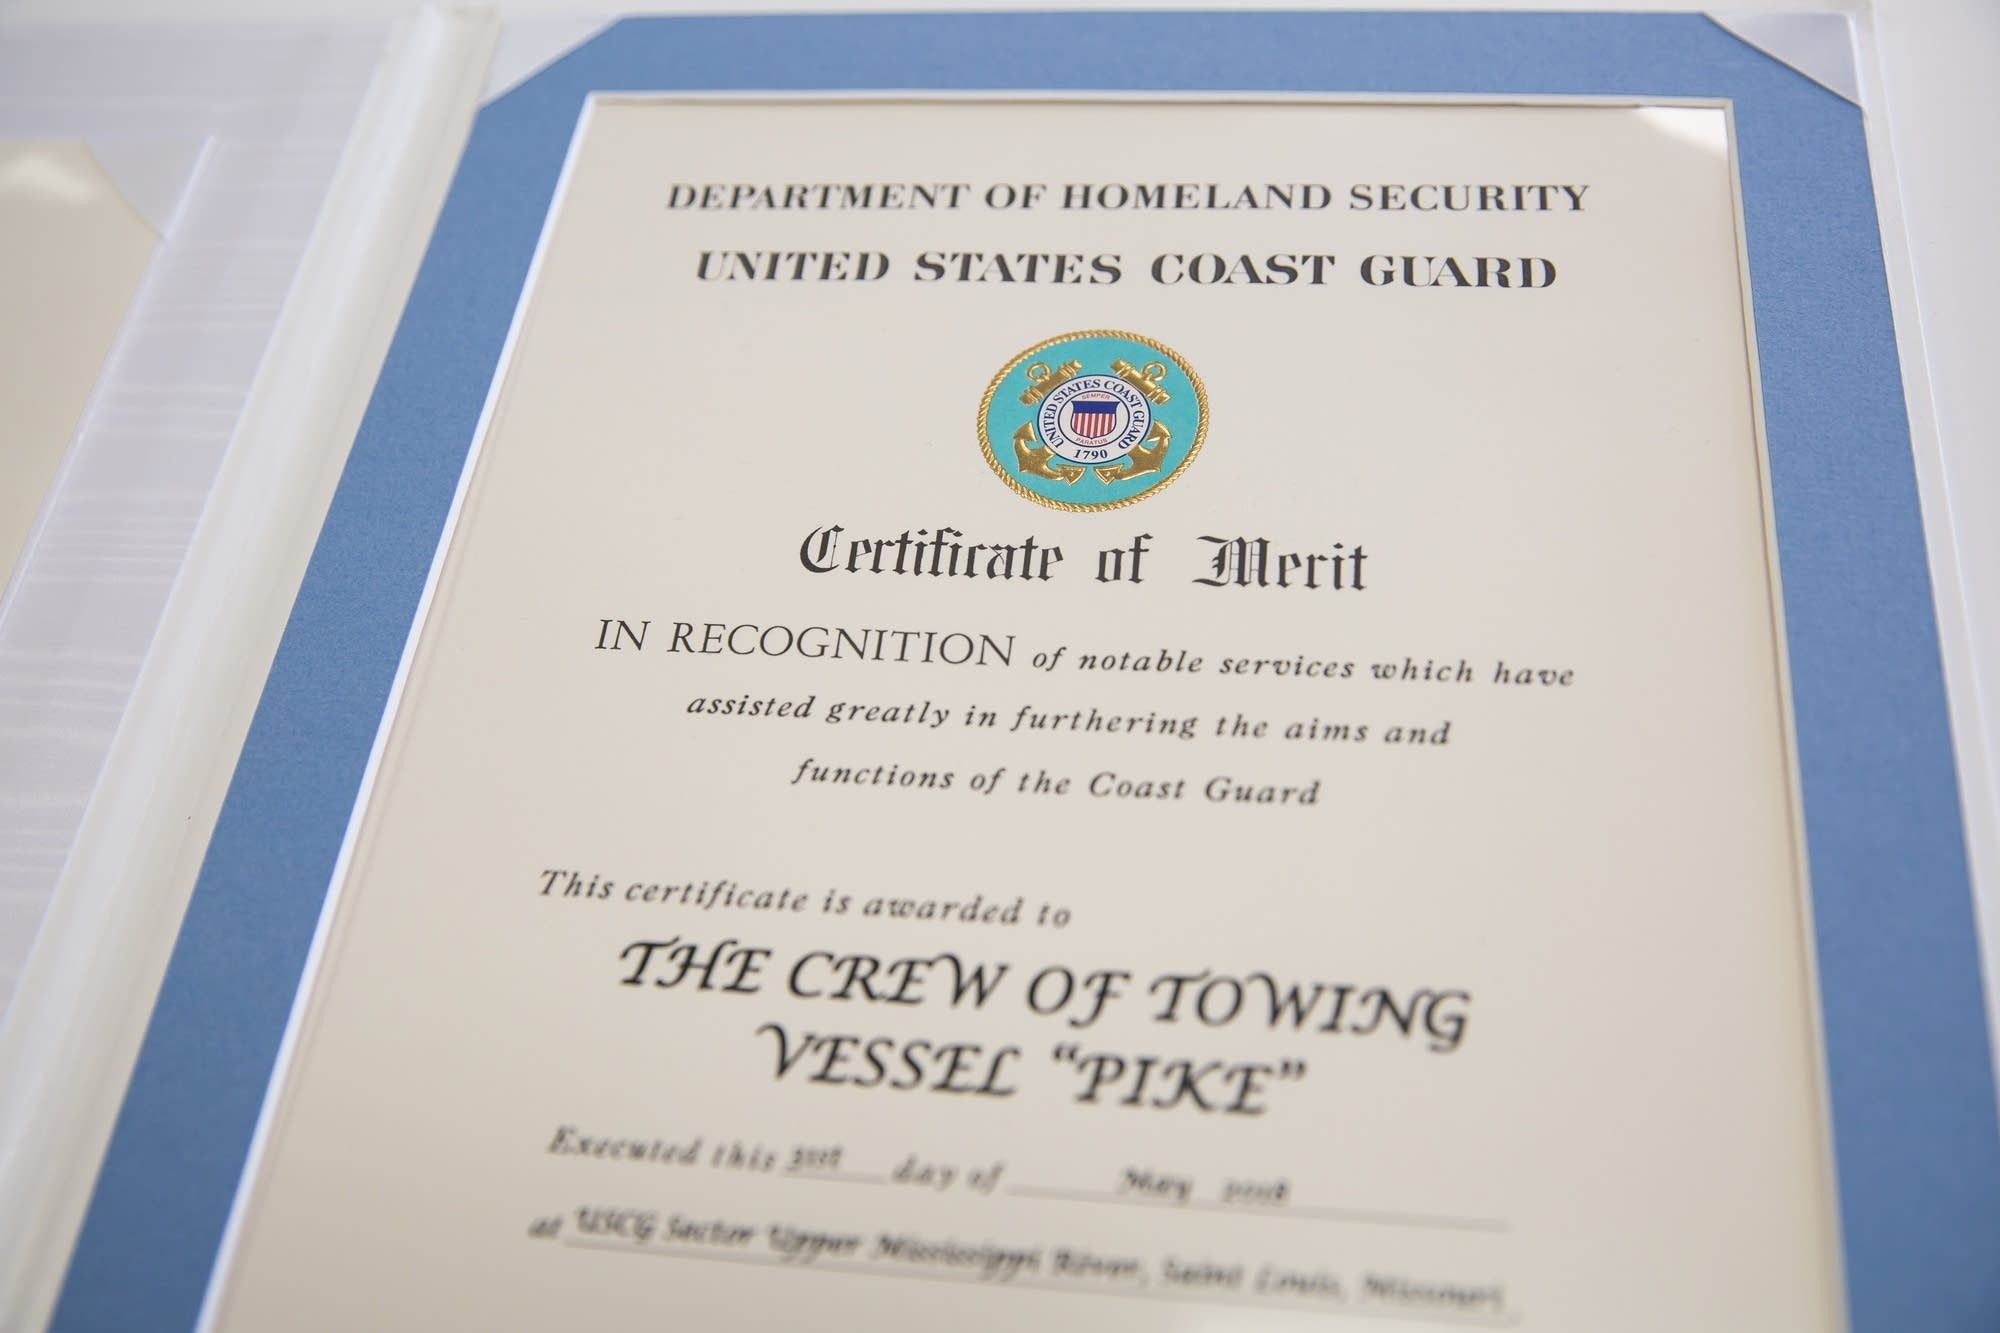 A certificate of merit from the Coast Guard.